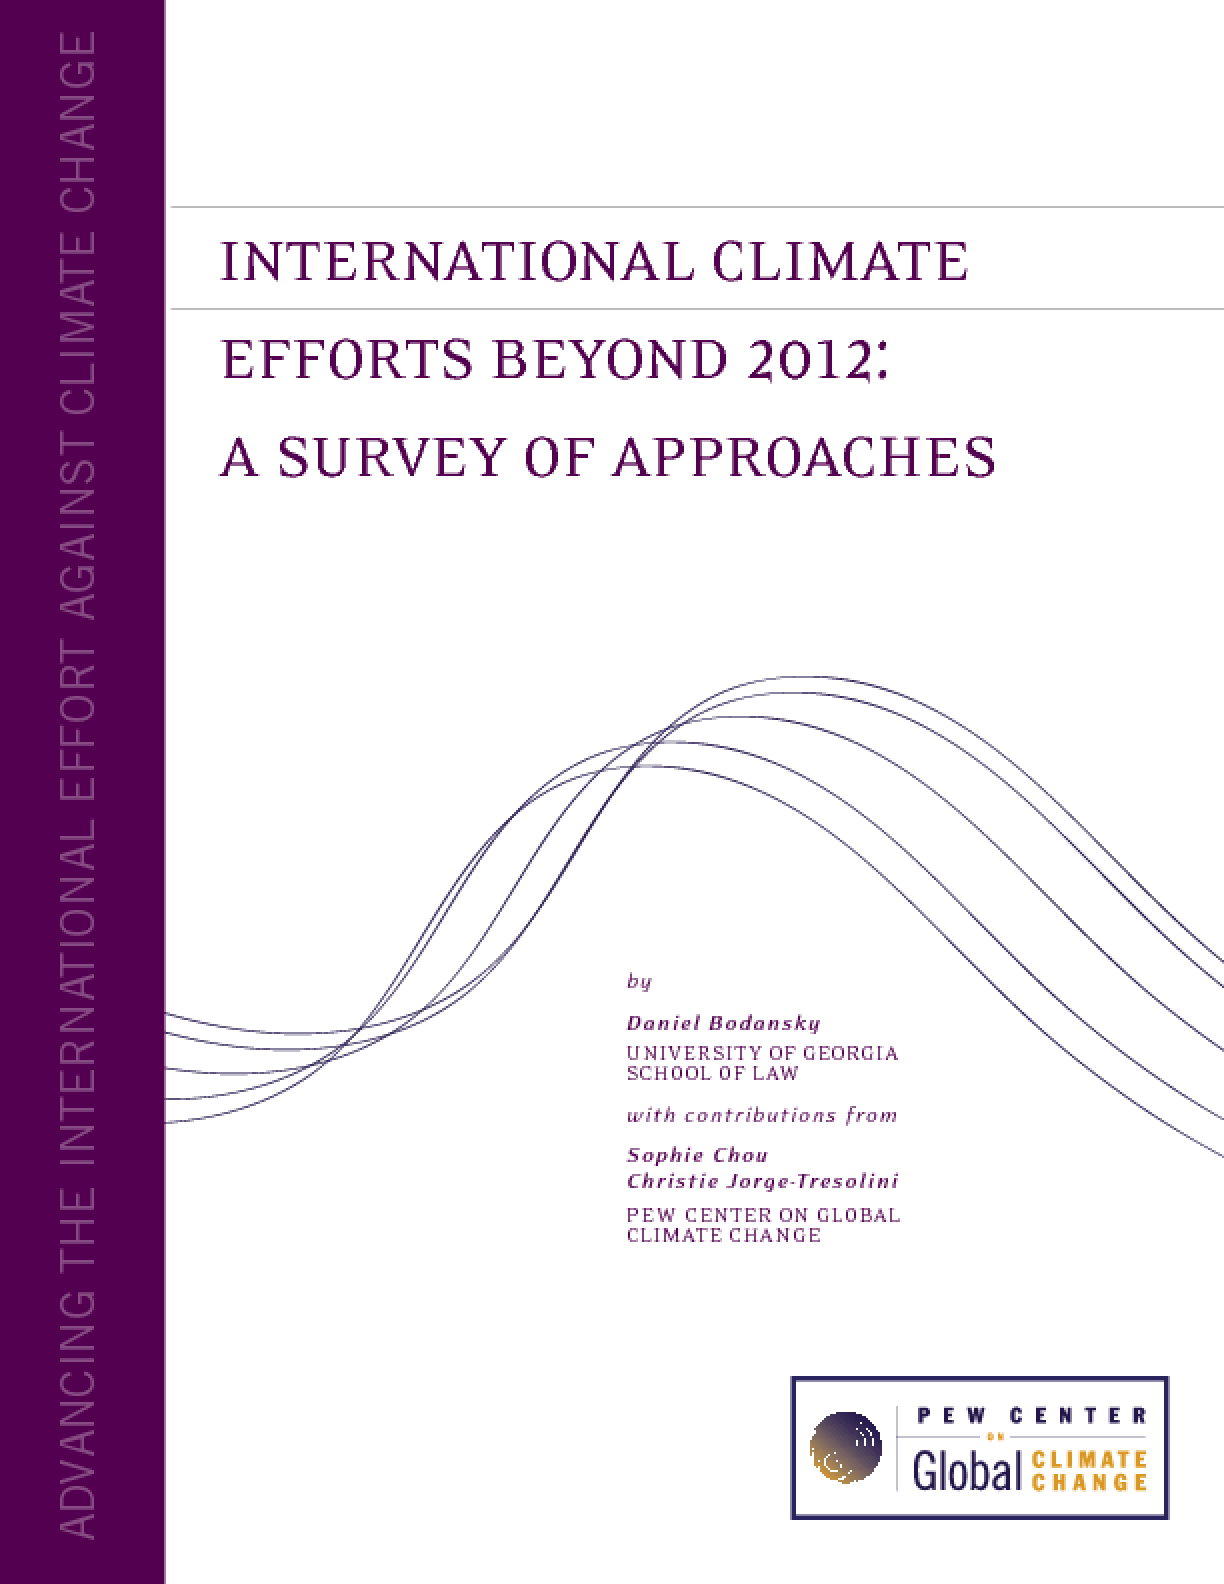 International Climate Efforts Beyond 2012: A Survey of Approaches